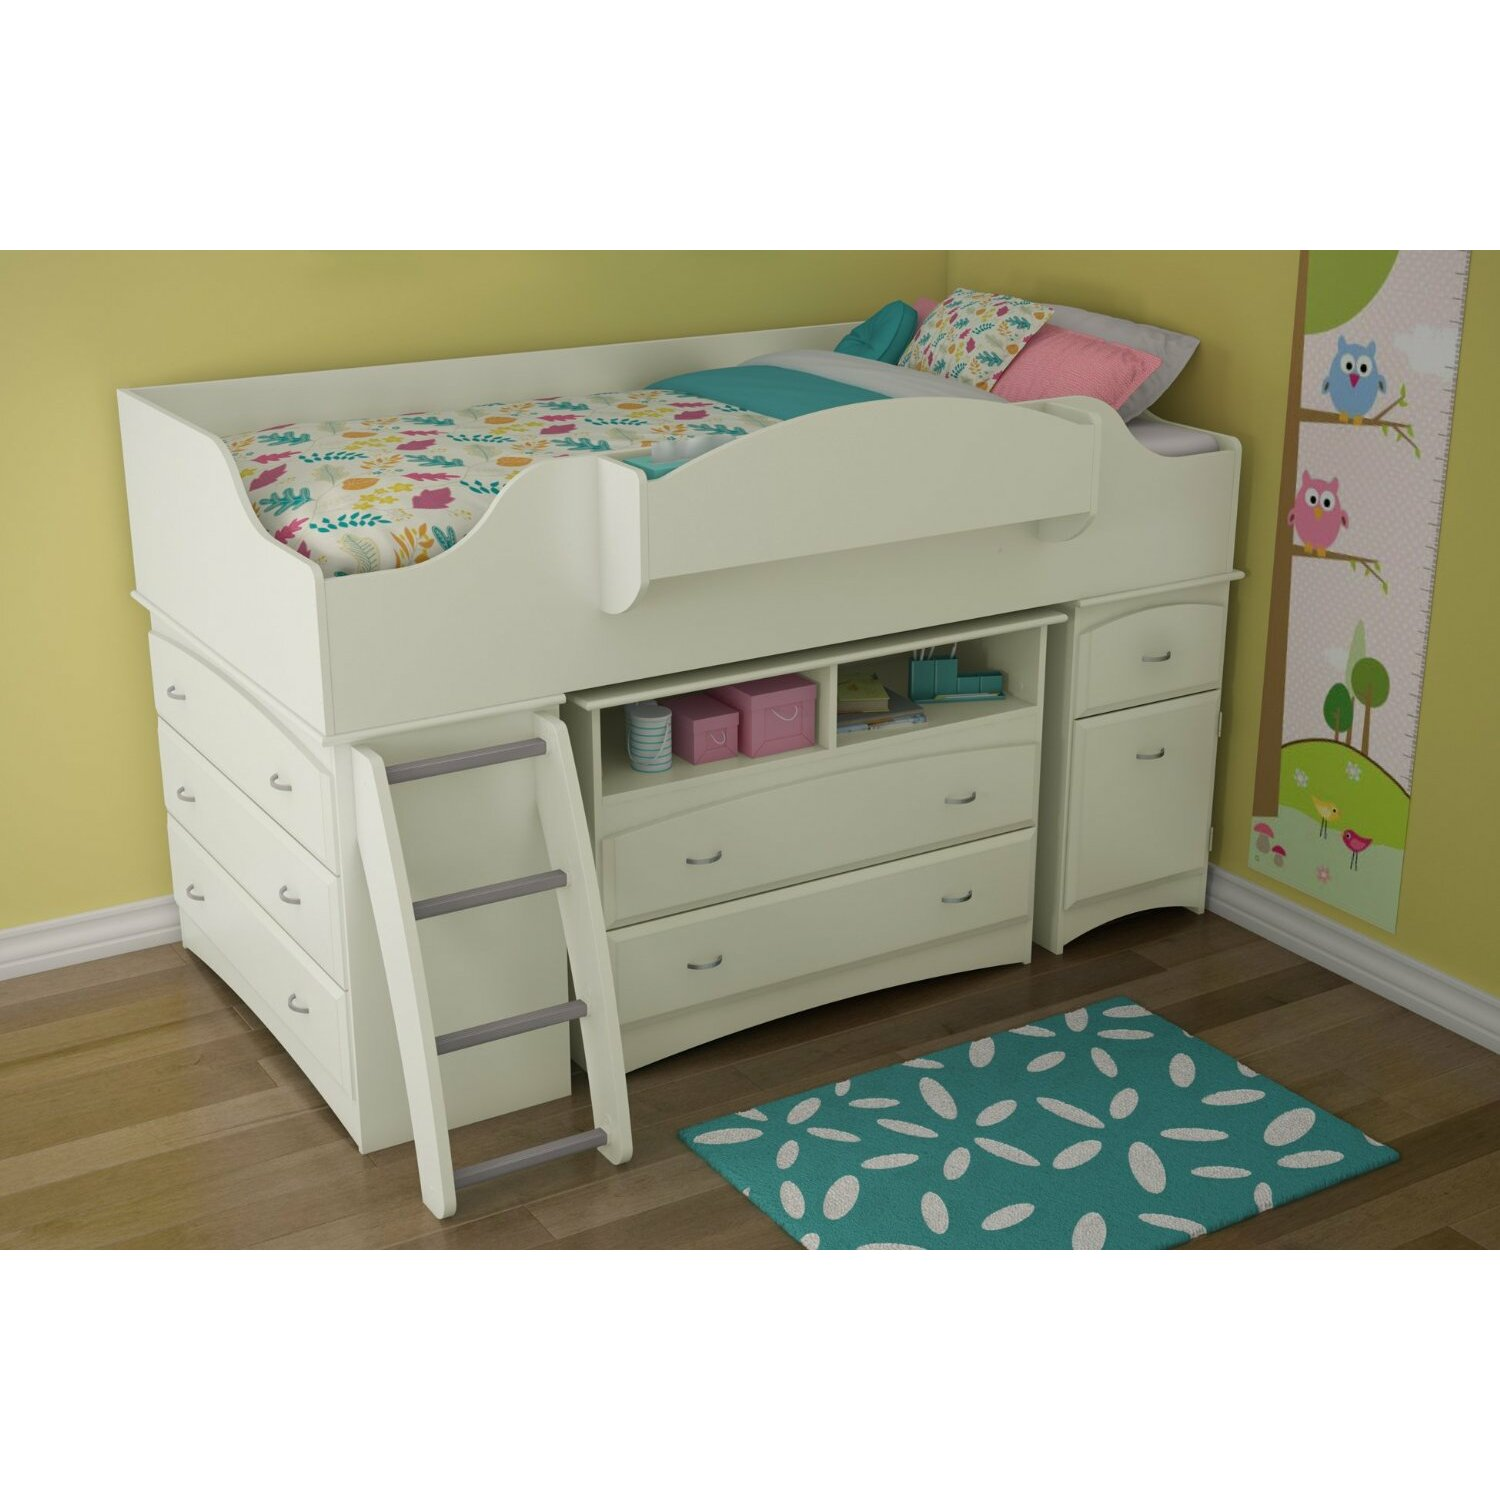 South Shore Imagine Loft Twin Bed With Storage & Reviews